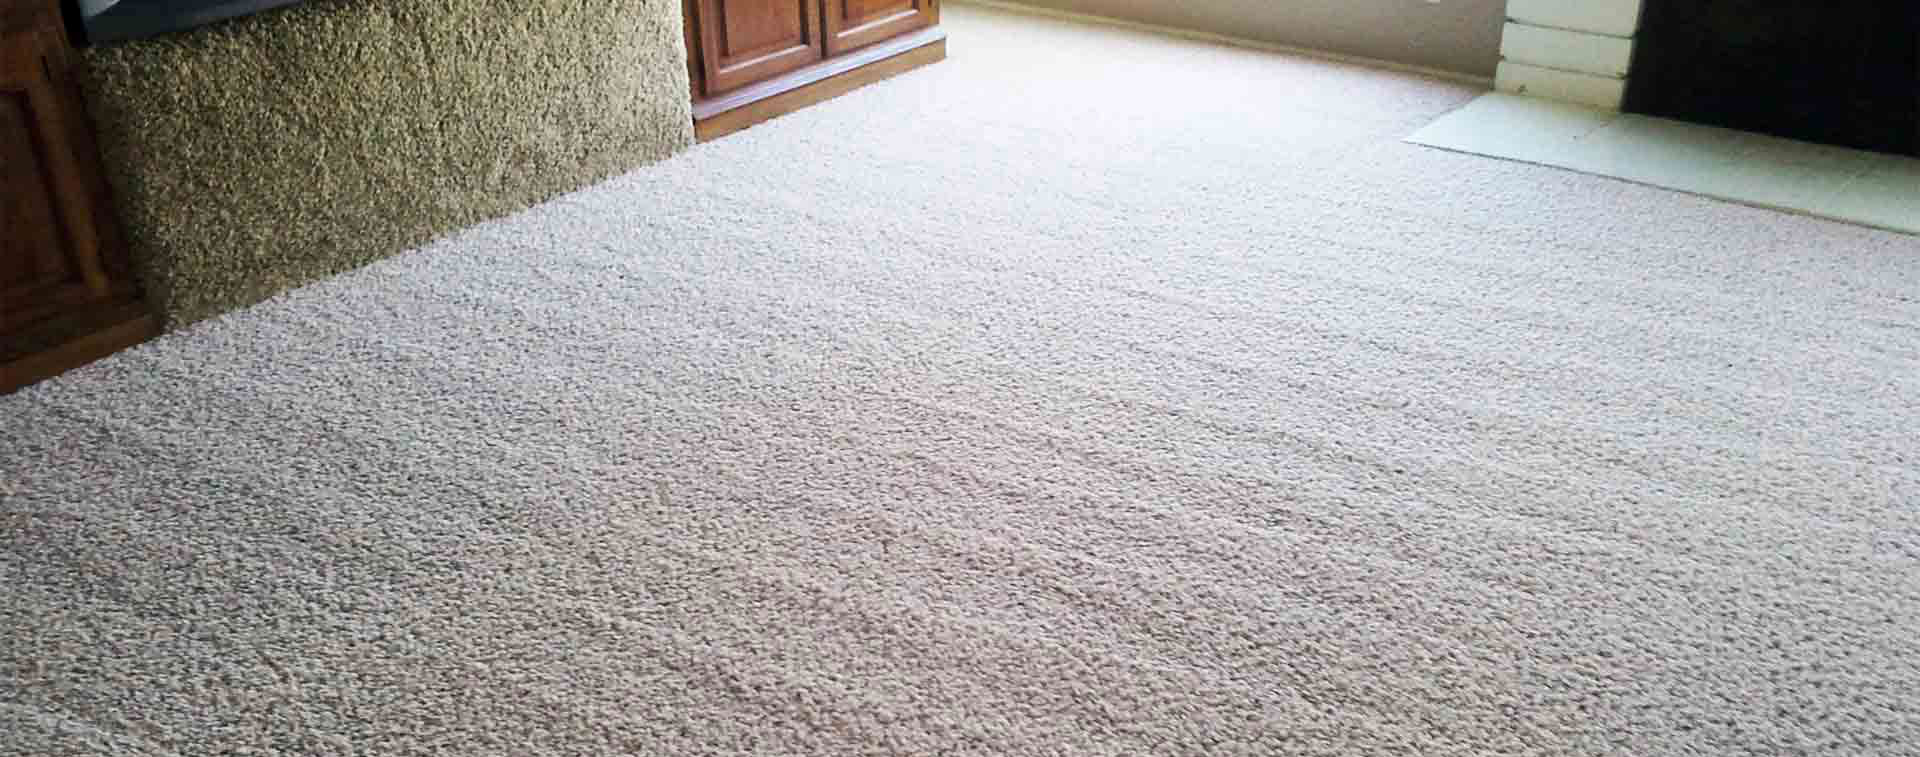 Carpet Cleaning Hornsby